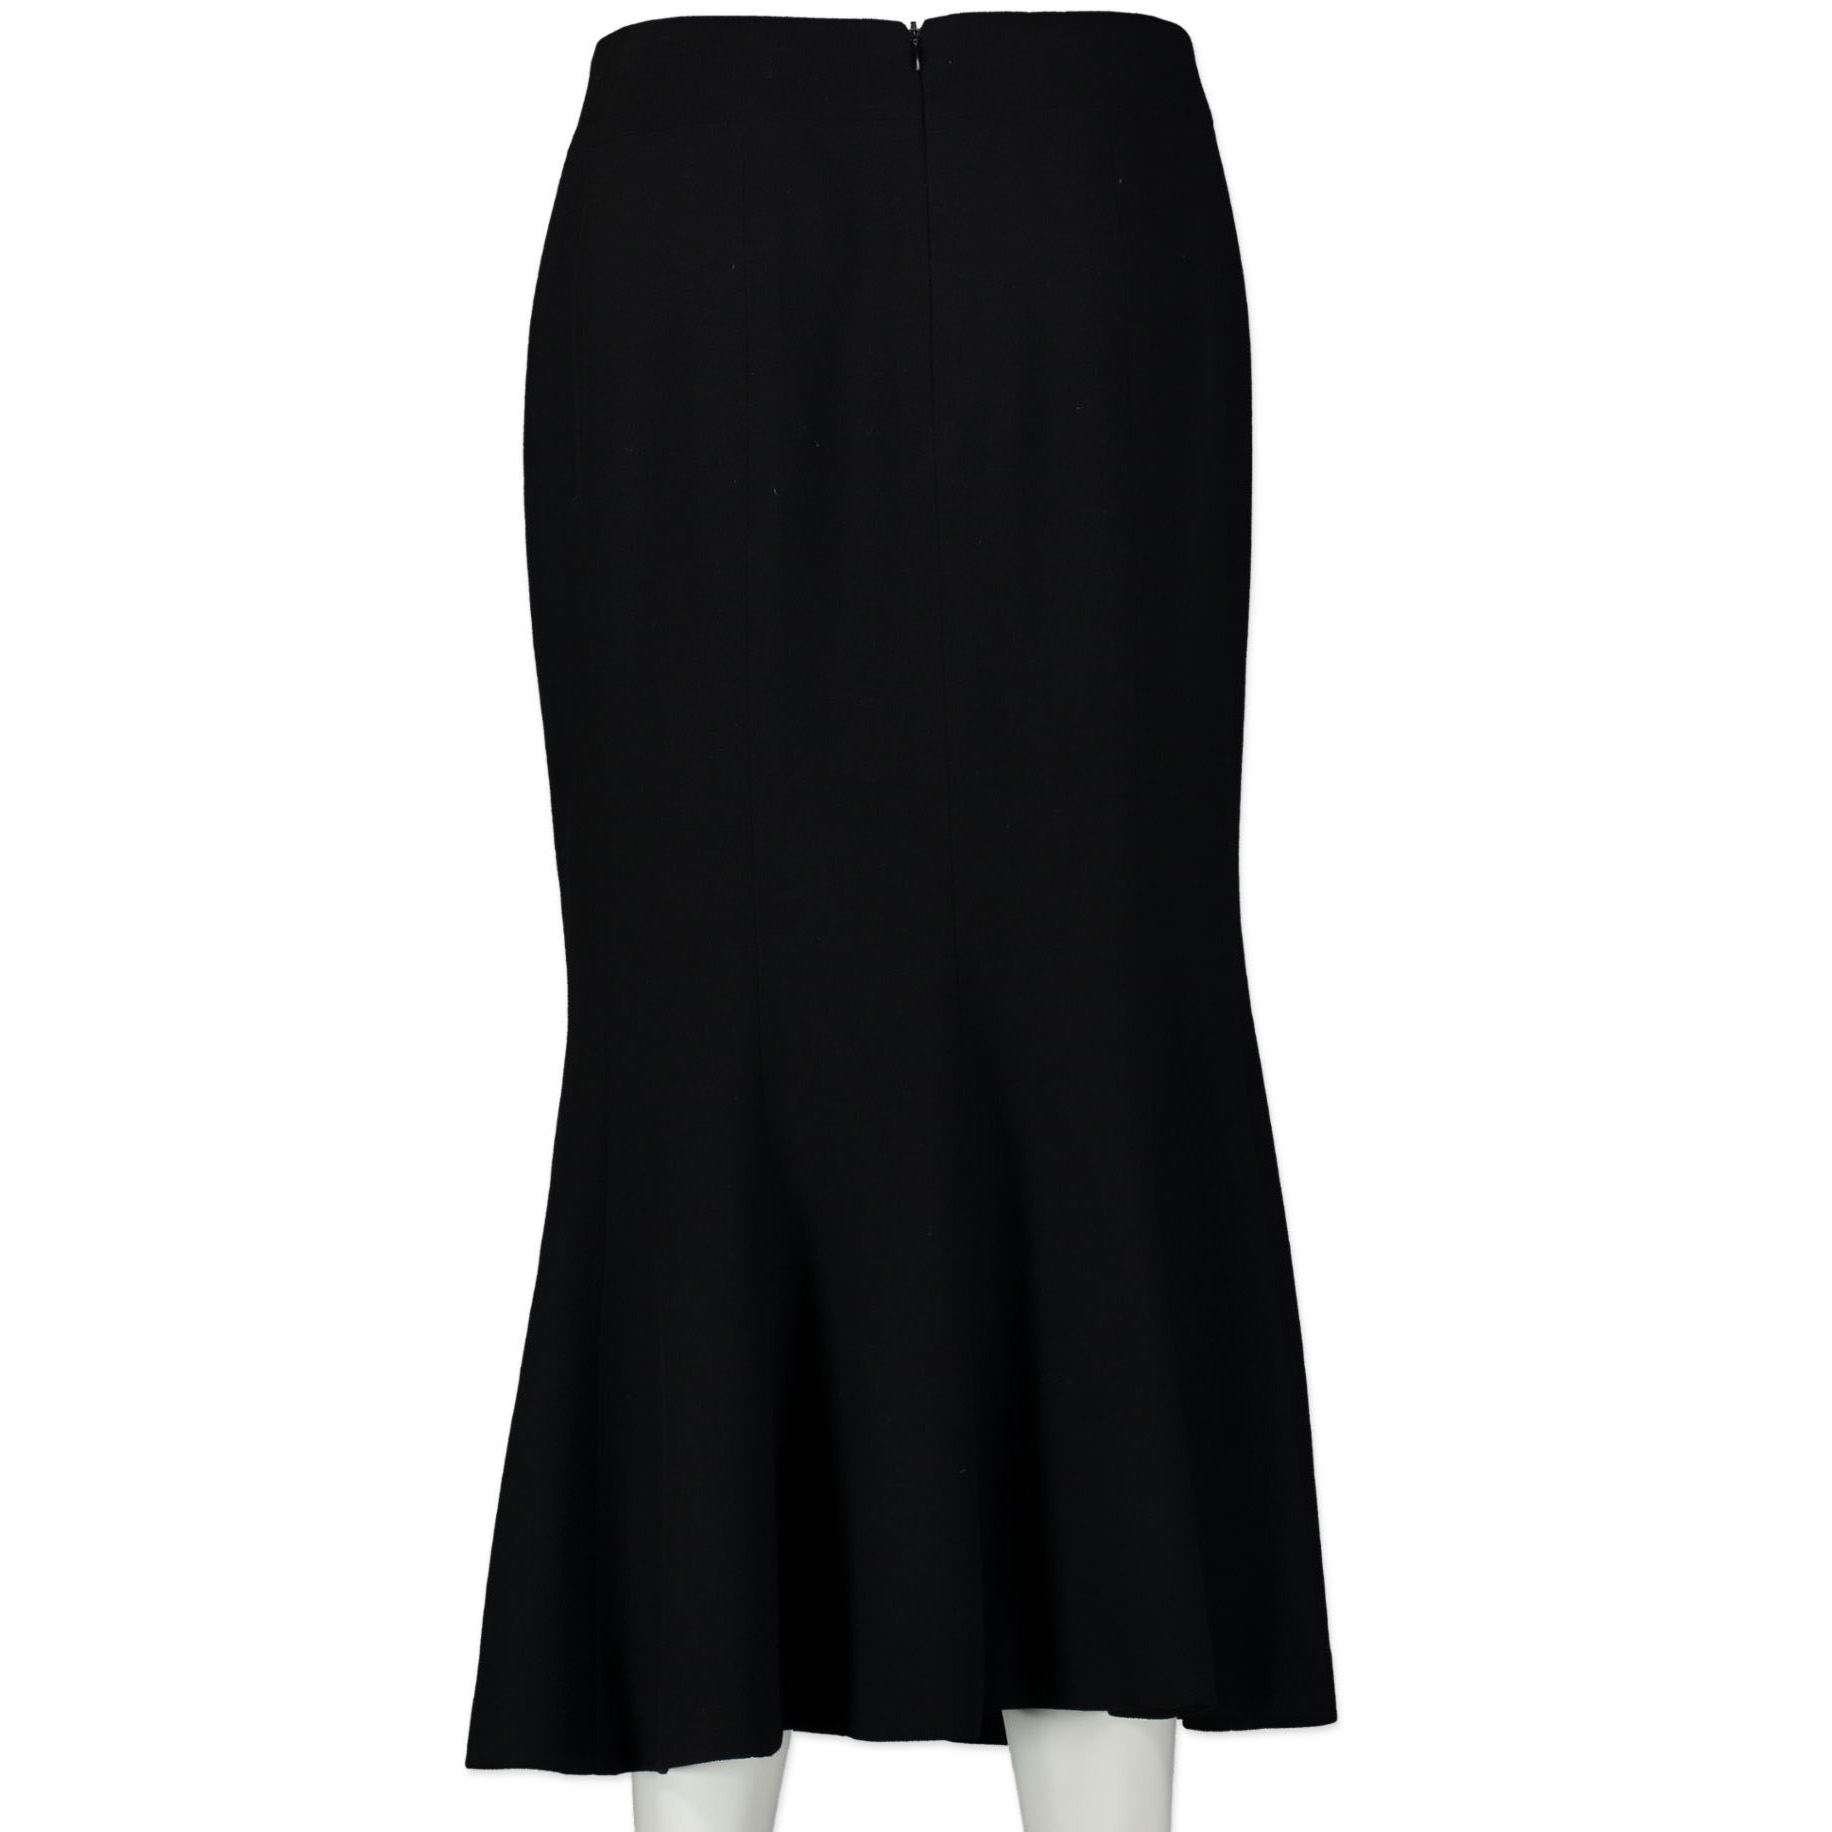 Chanel Black Midi Skirt - size FR42